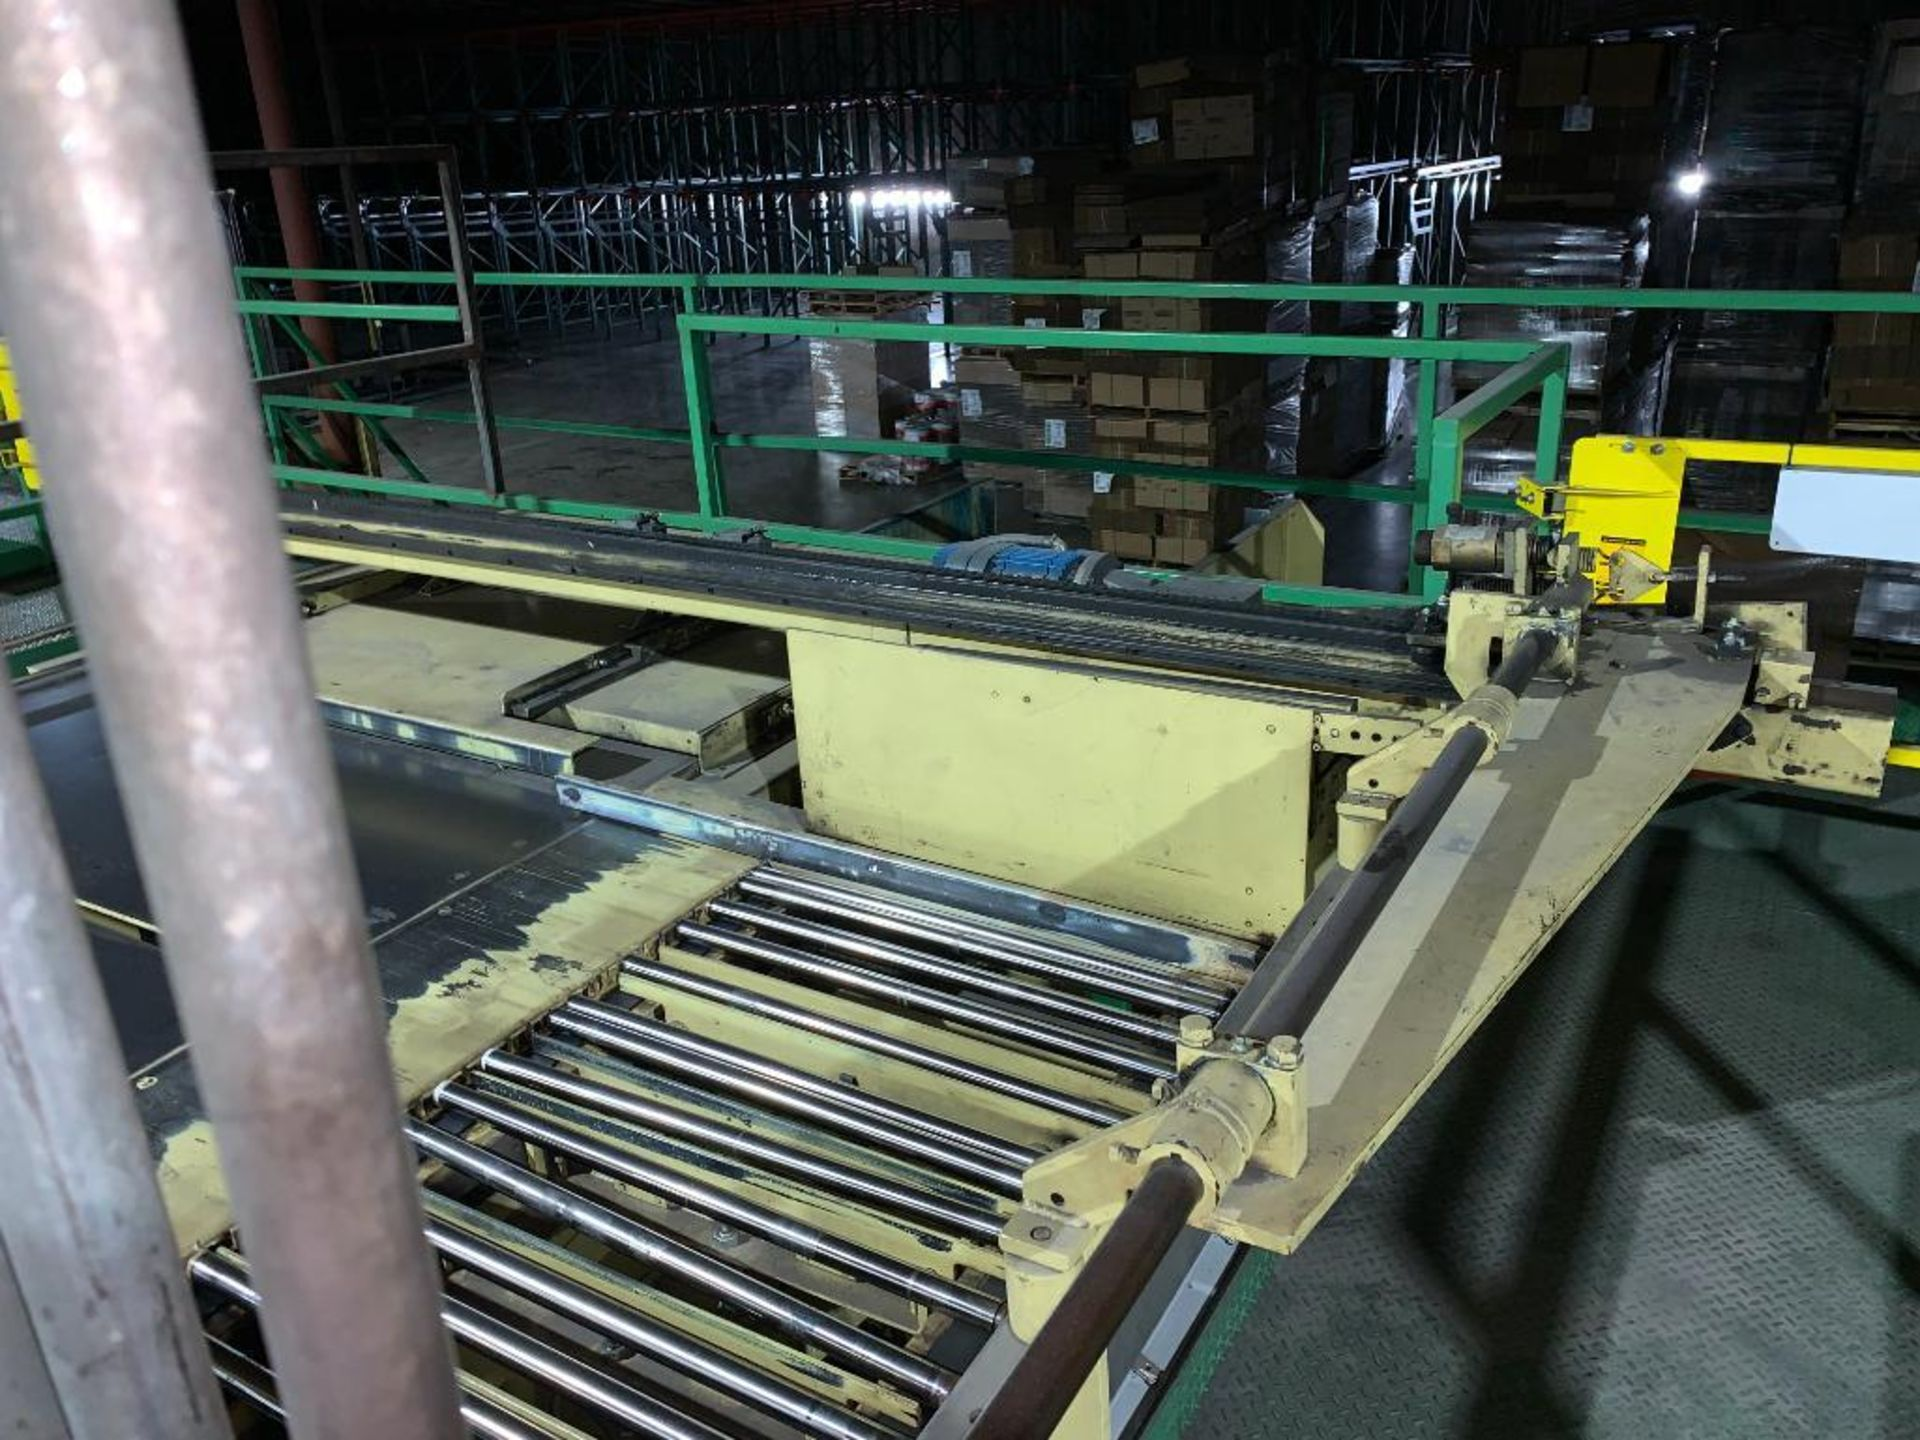 1992 Currie top to bottom palletizer, machine number LSP-5-1177 - Image 51 of 53